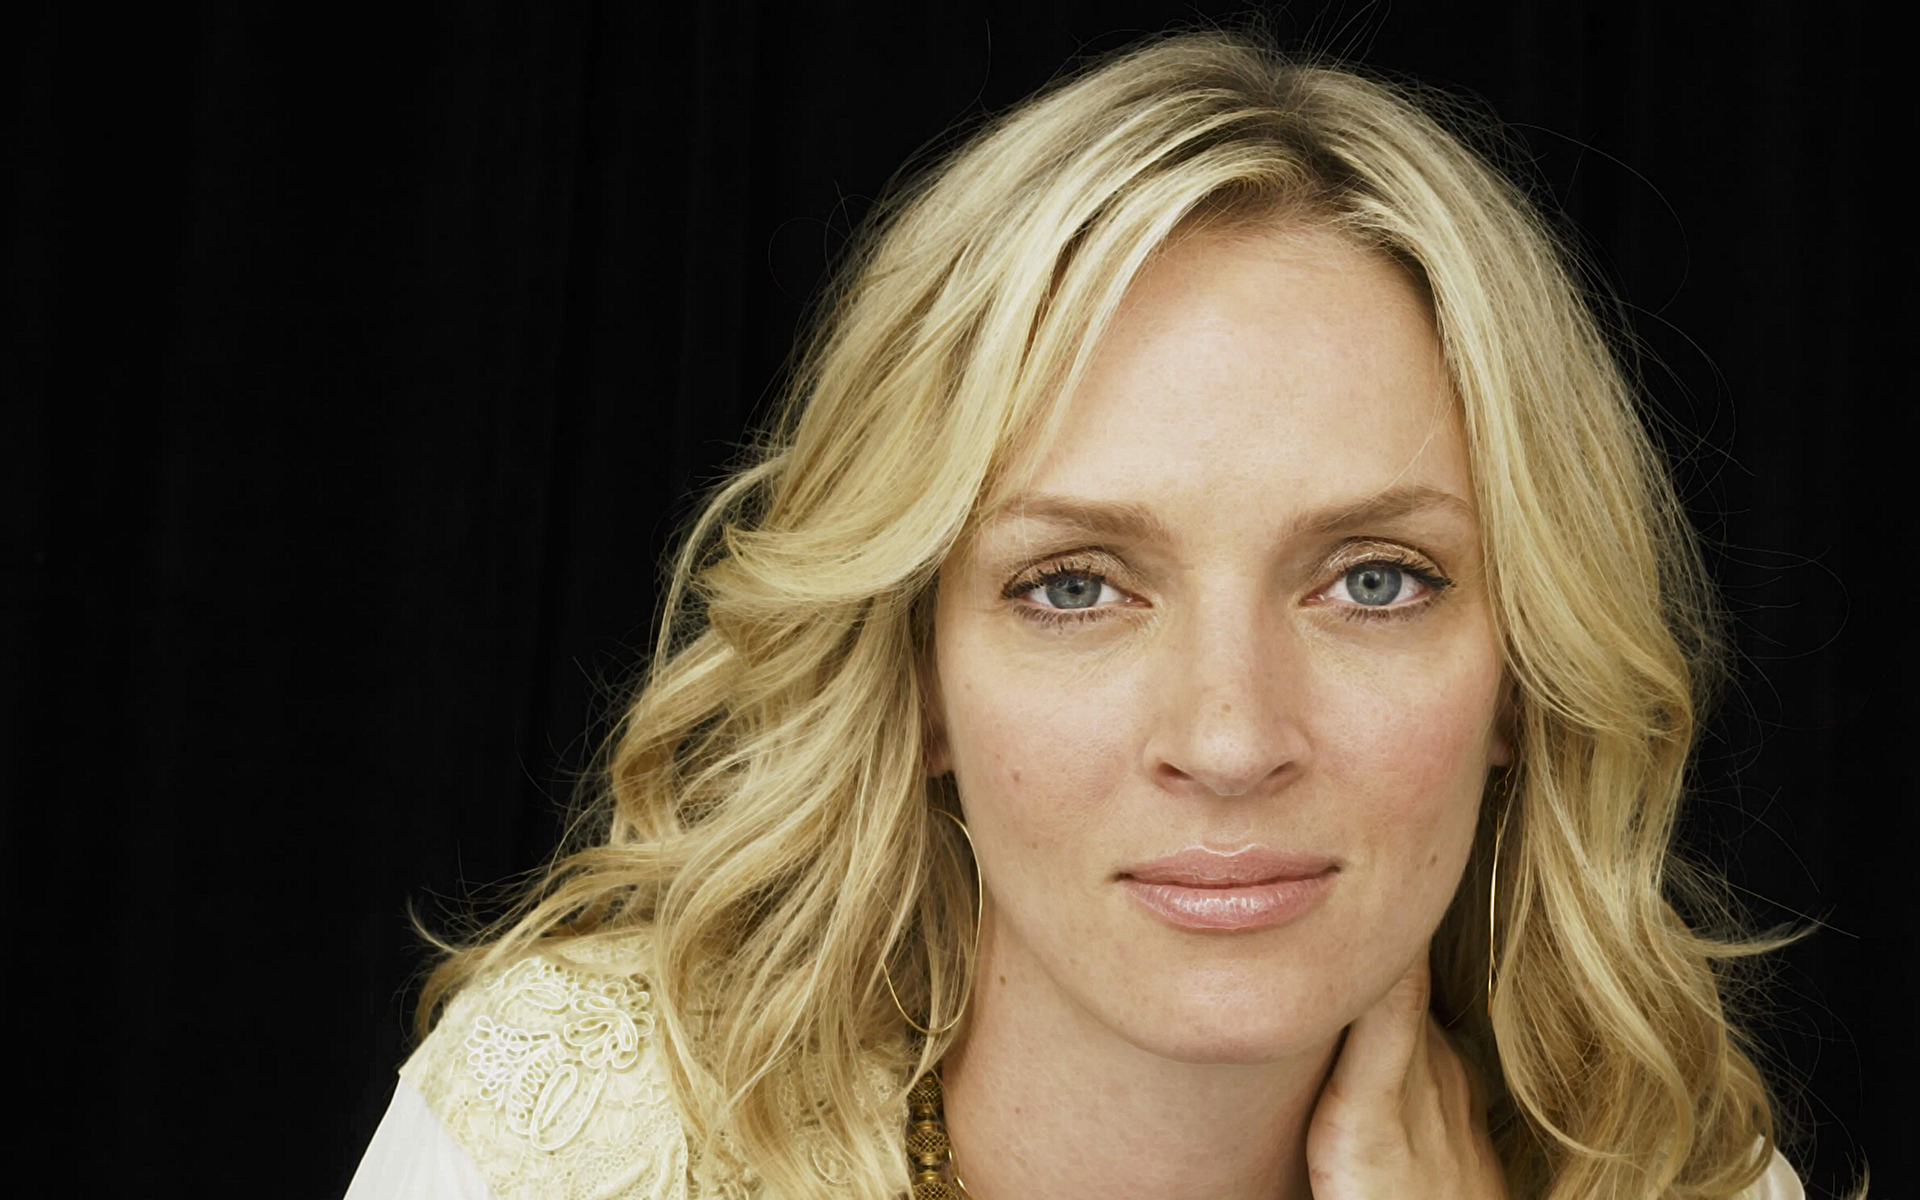 Uma Thurman Videos | POPSUGAR Celebrity